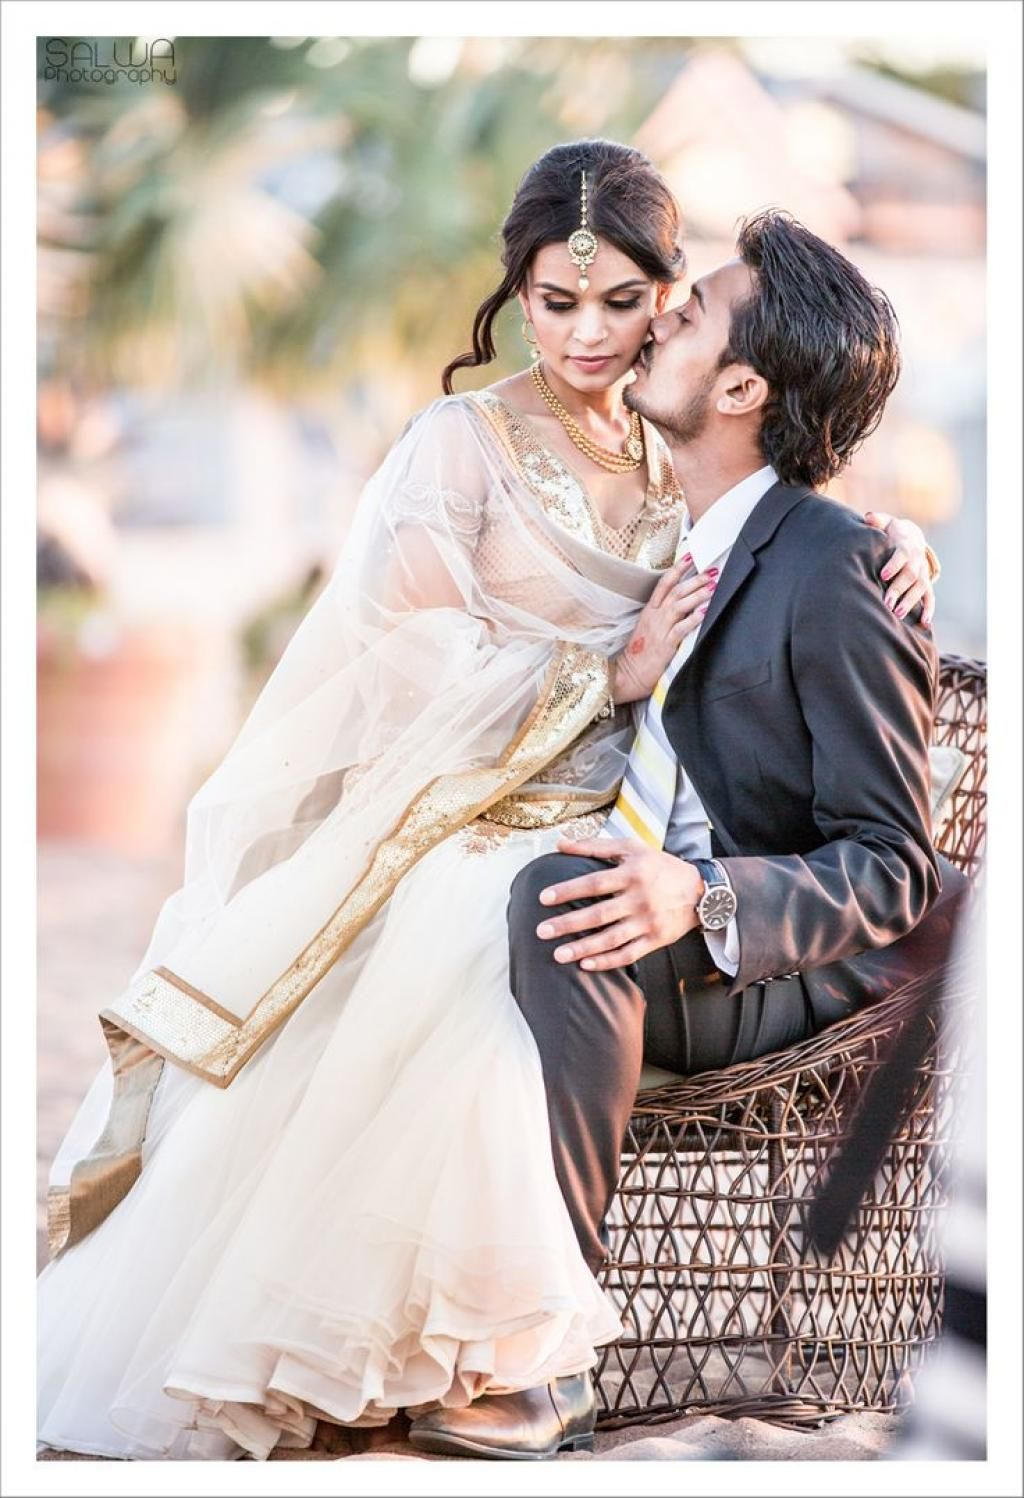 Sunset prewedding photoshoot ideas 15 photos shoots indian wedding photography indian wedding photoshoot punjabi engagement photography indian bride